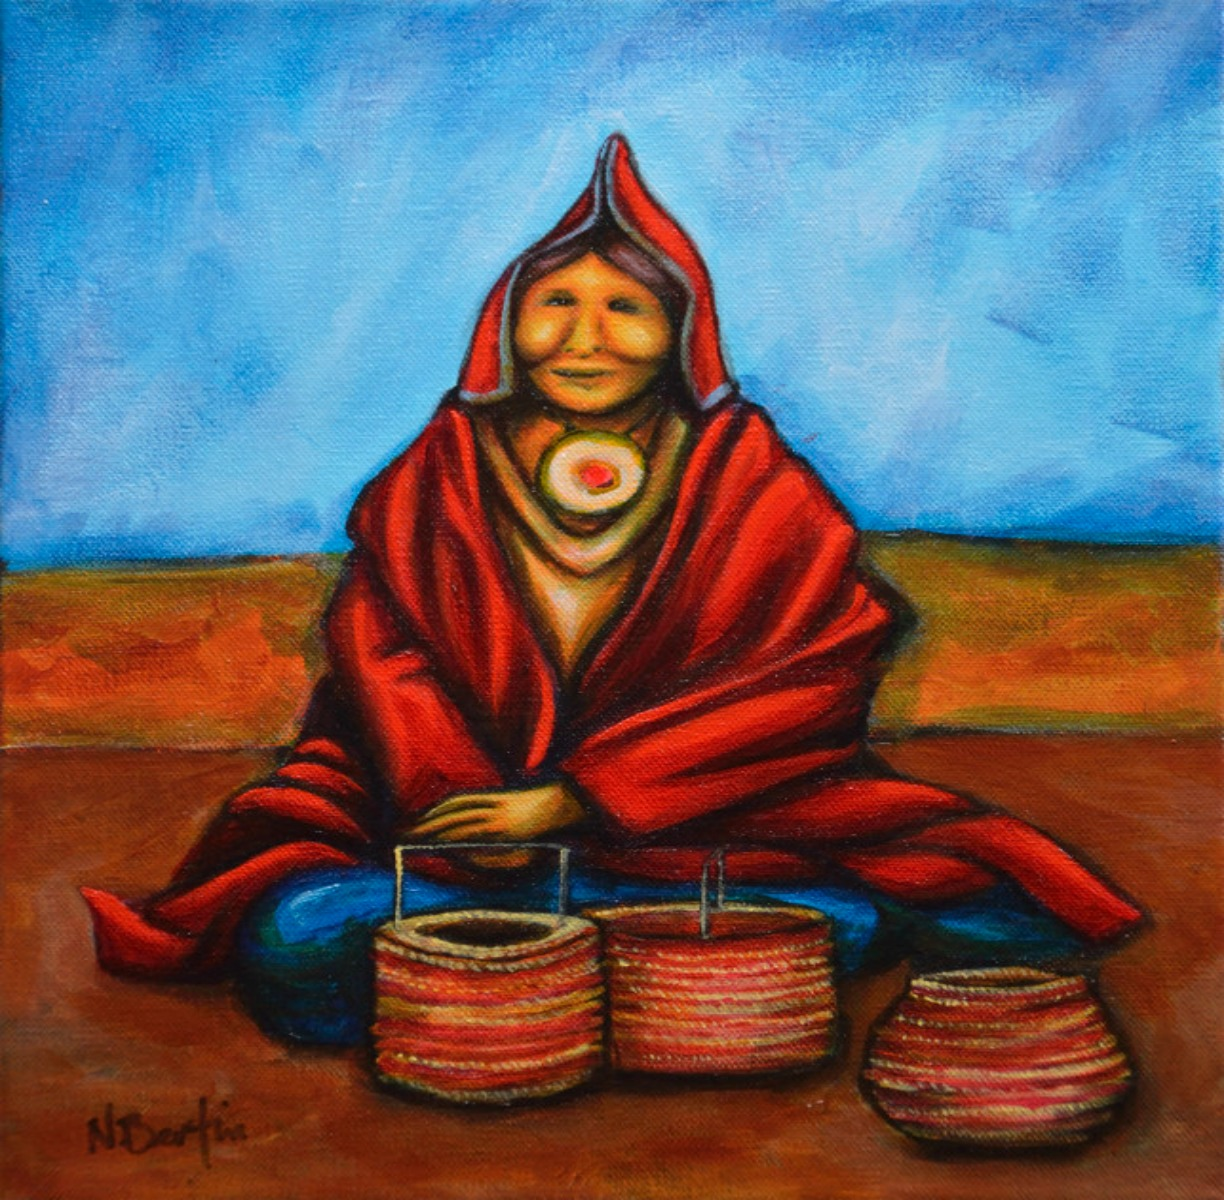 THE RESILIENCE OF INDIGENOUS WOMEN AT BEARCLAW GALLERY